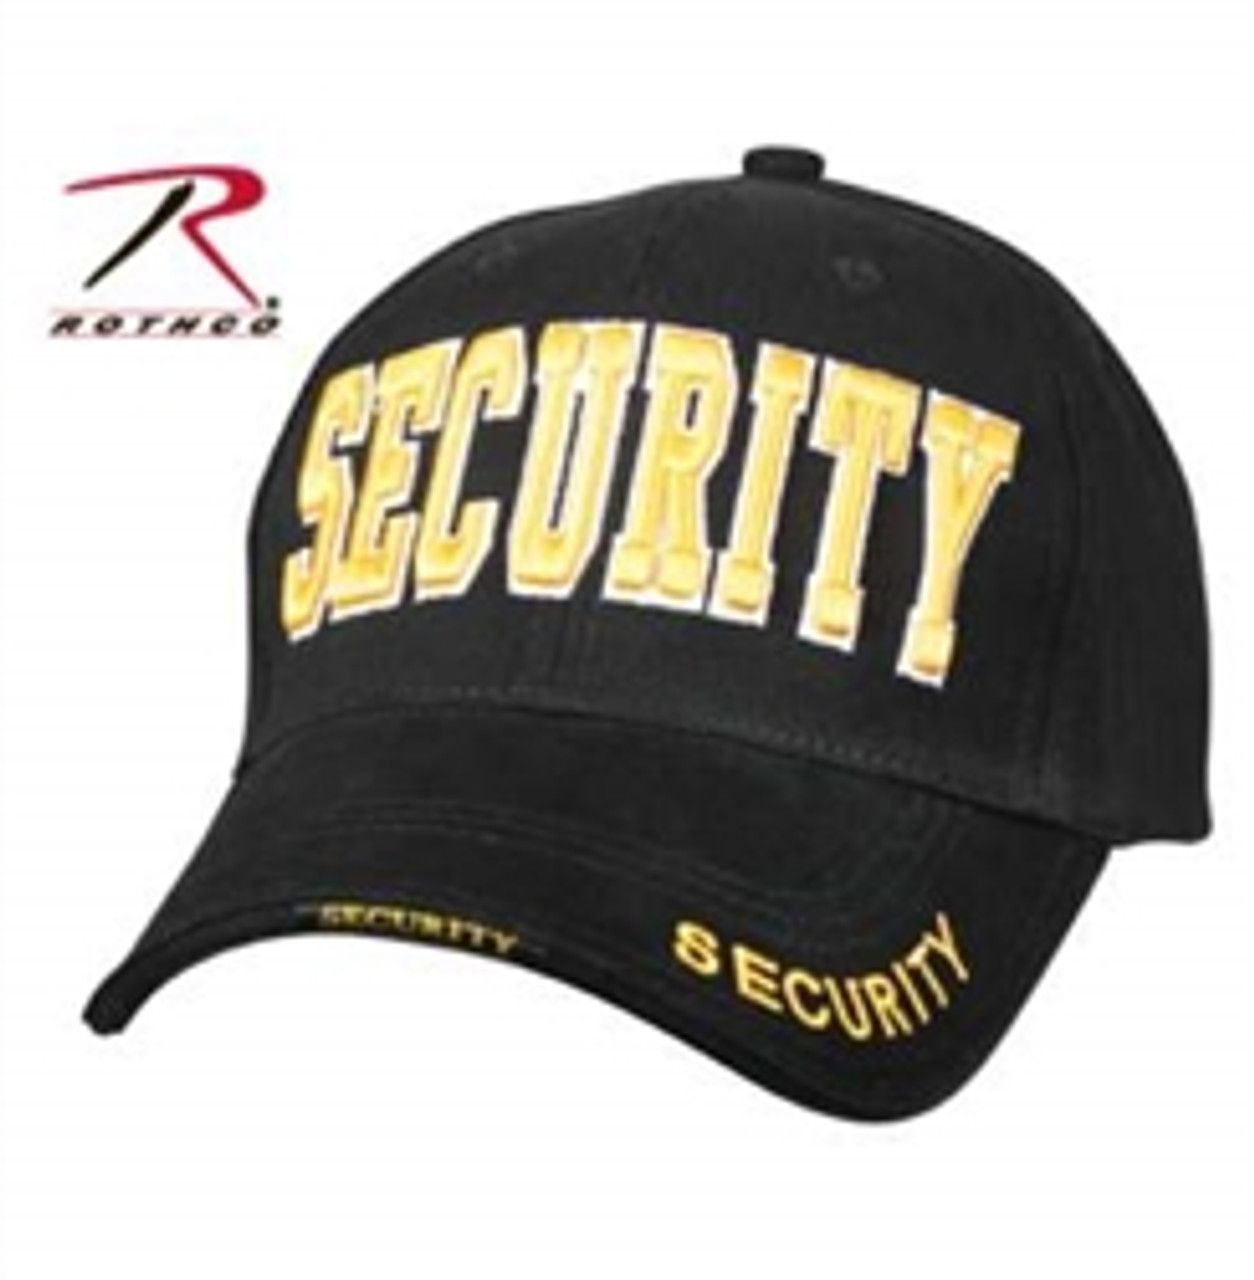 Security - Rothco Cap